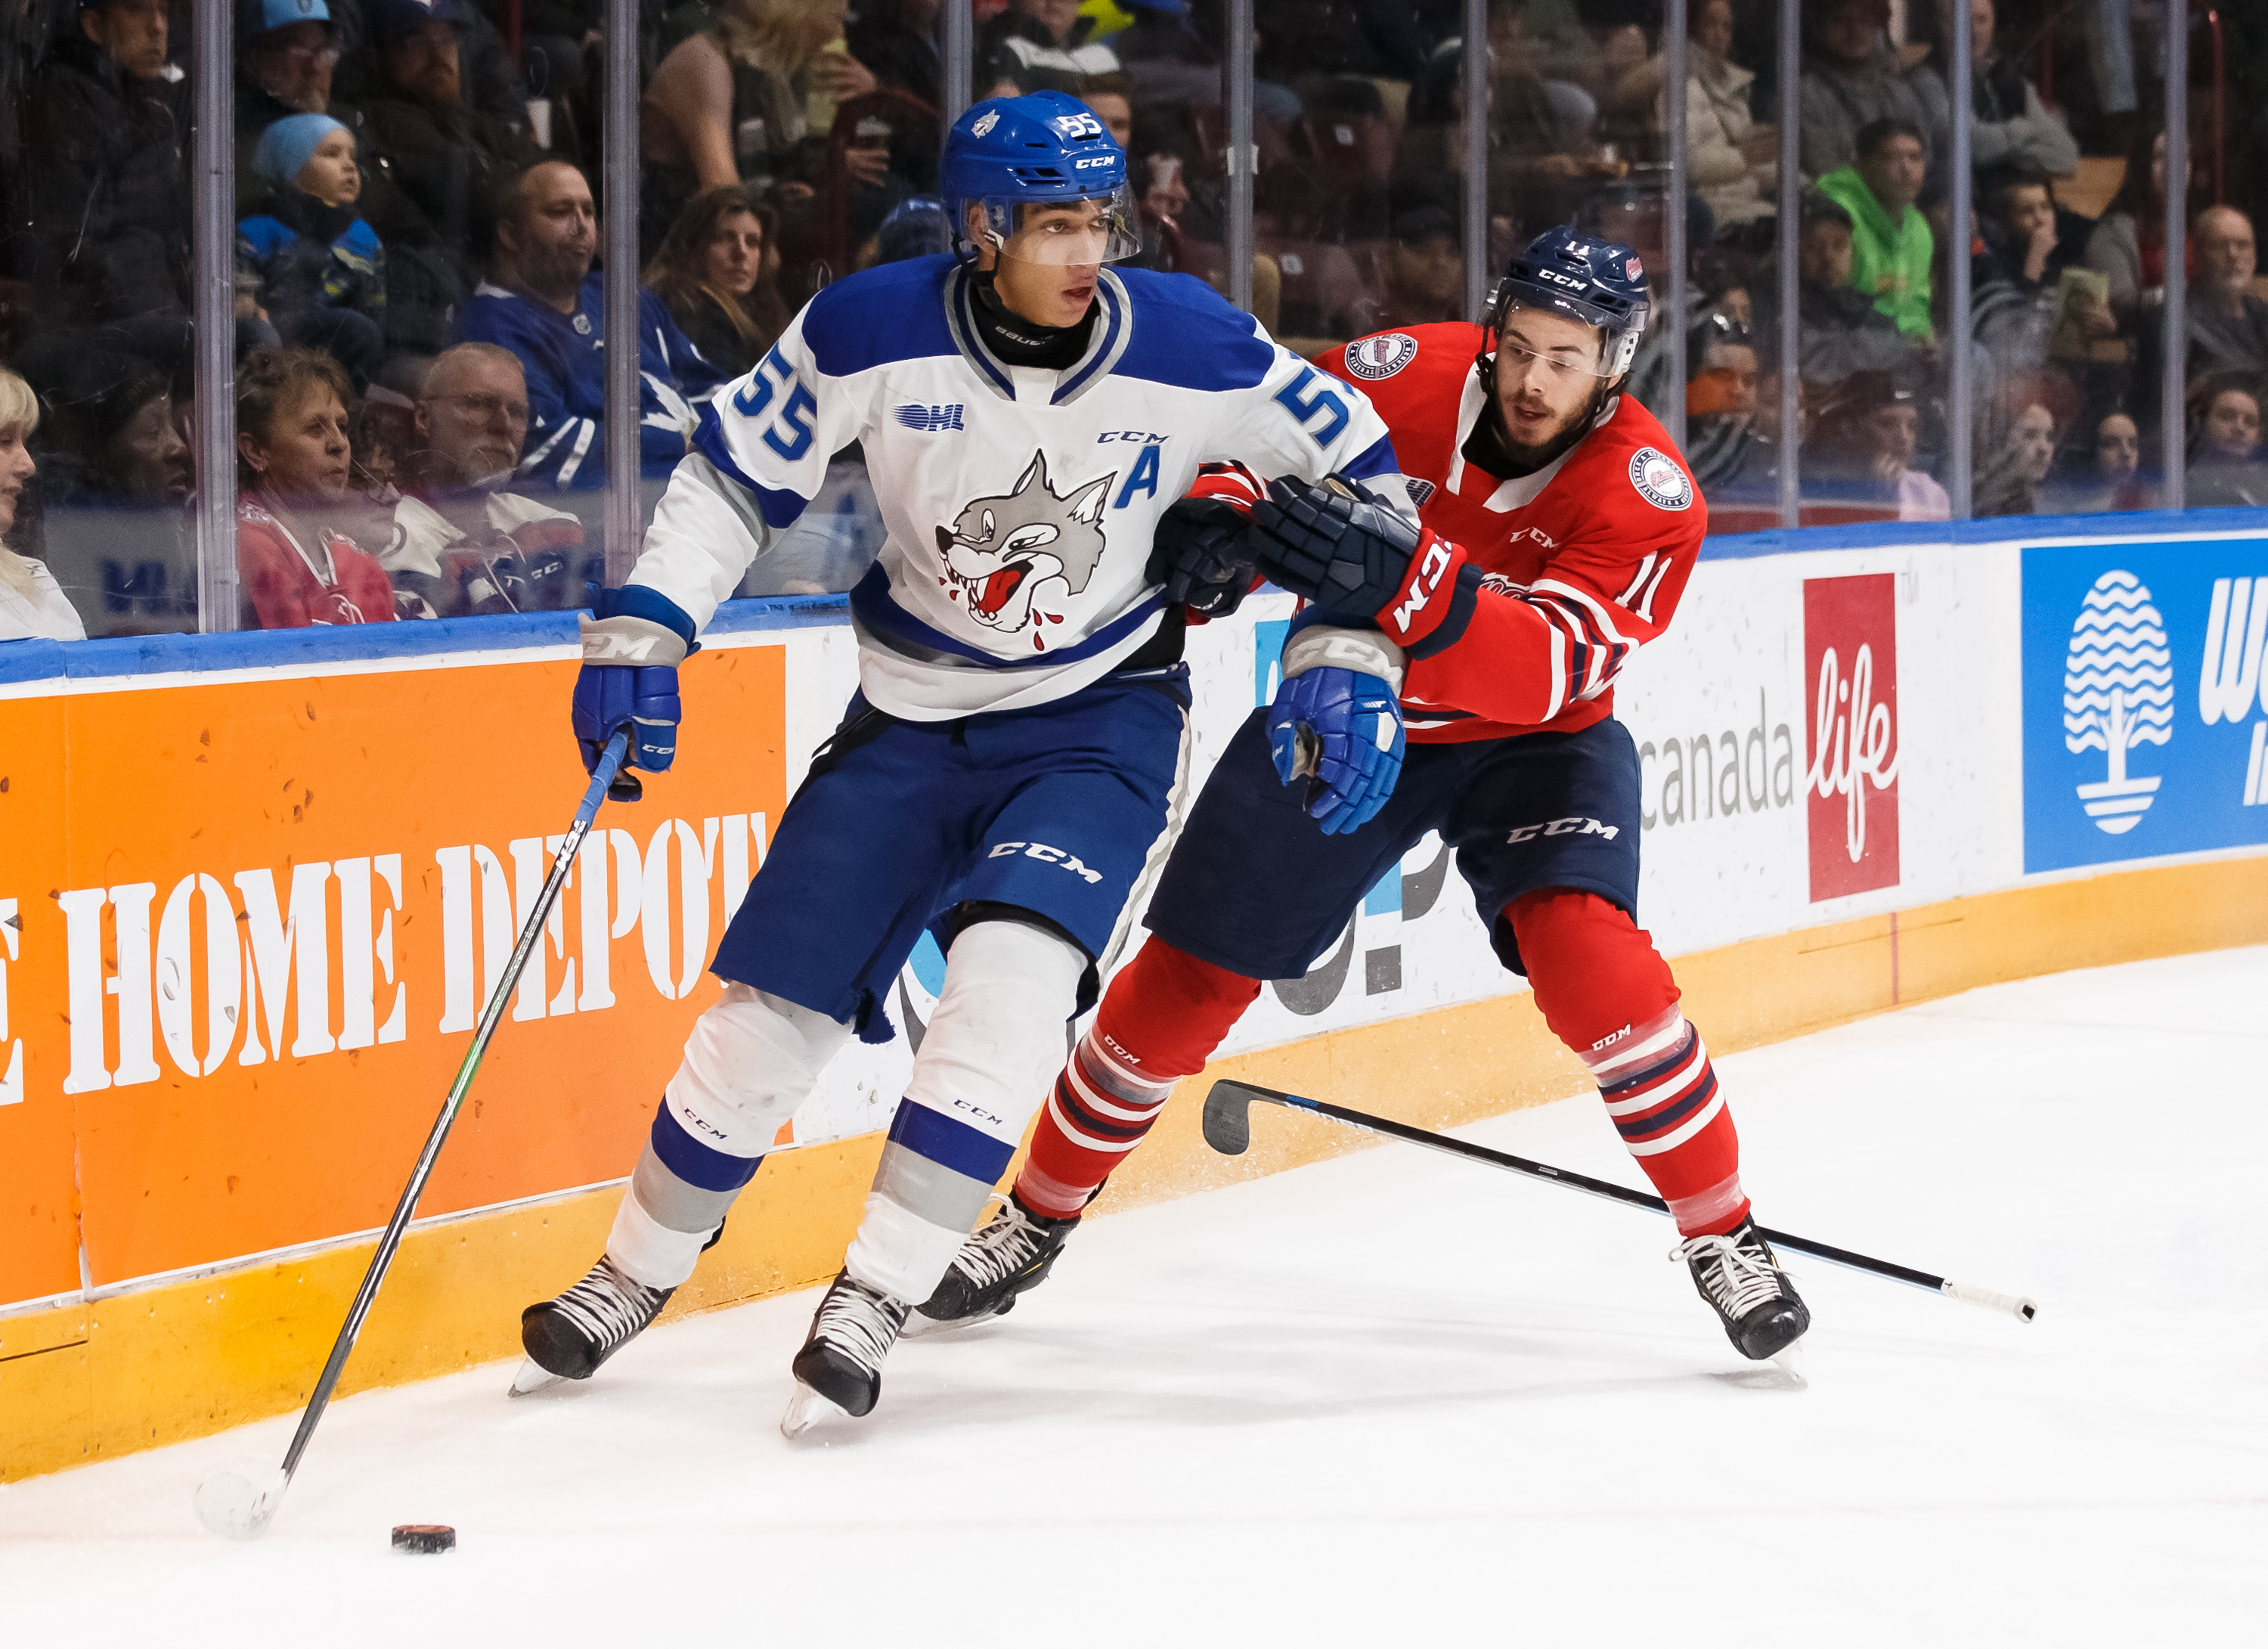 Quinton Byfield #55 of the Sudbury Wolves protects the puck from Giovanni Vallati #11 of the Oshawa Generals during an OHL game at the Tribute Communities Centre on February 7, 2020 in Oshawa, Ontario, Canada.